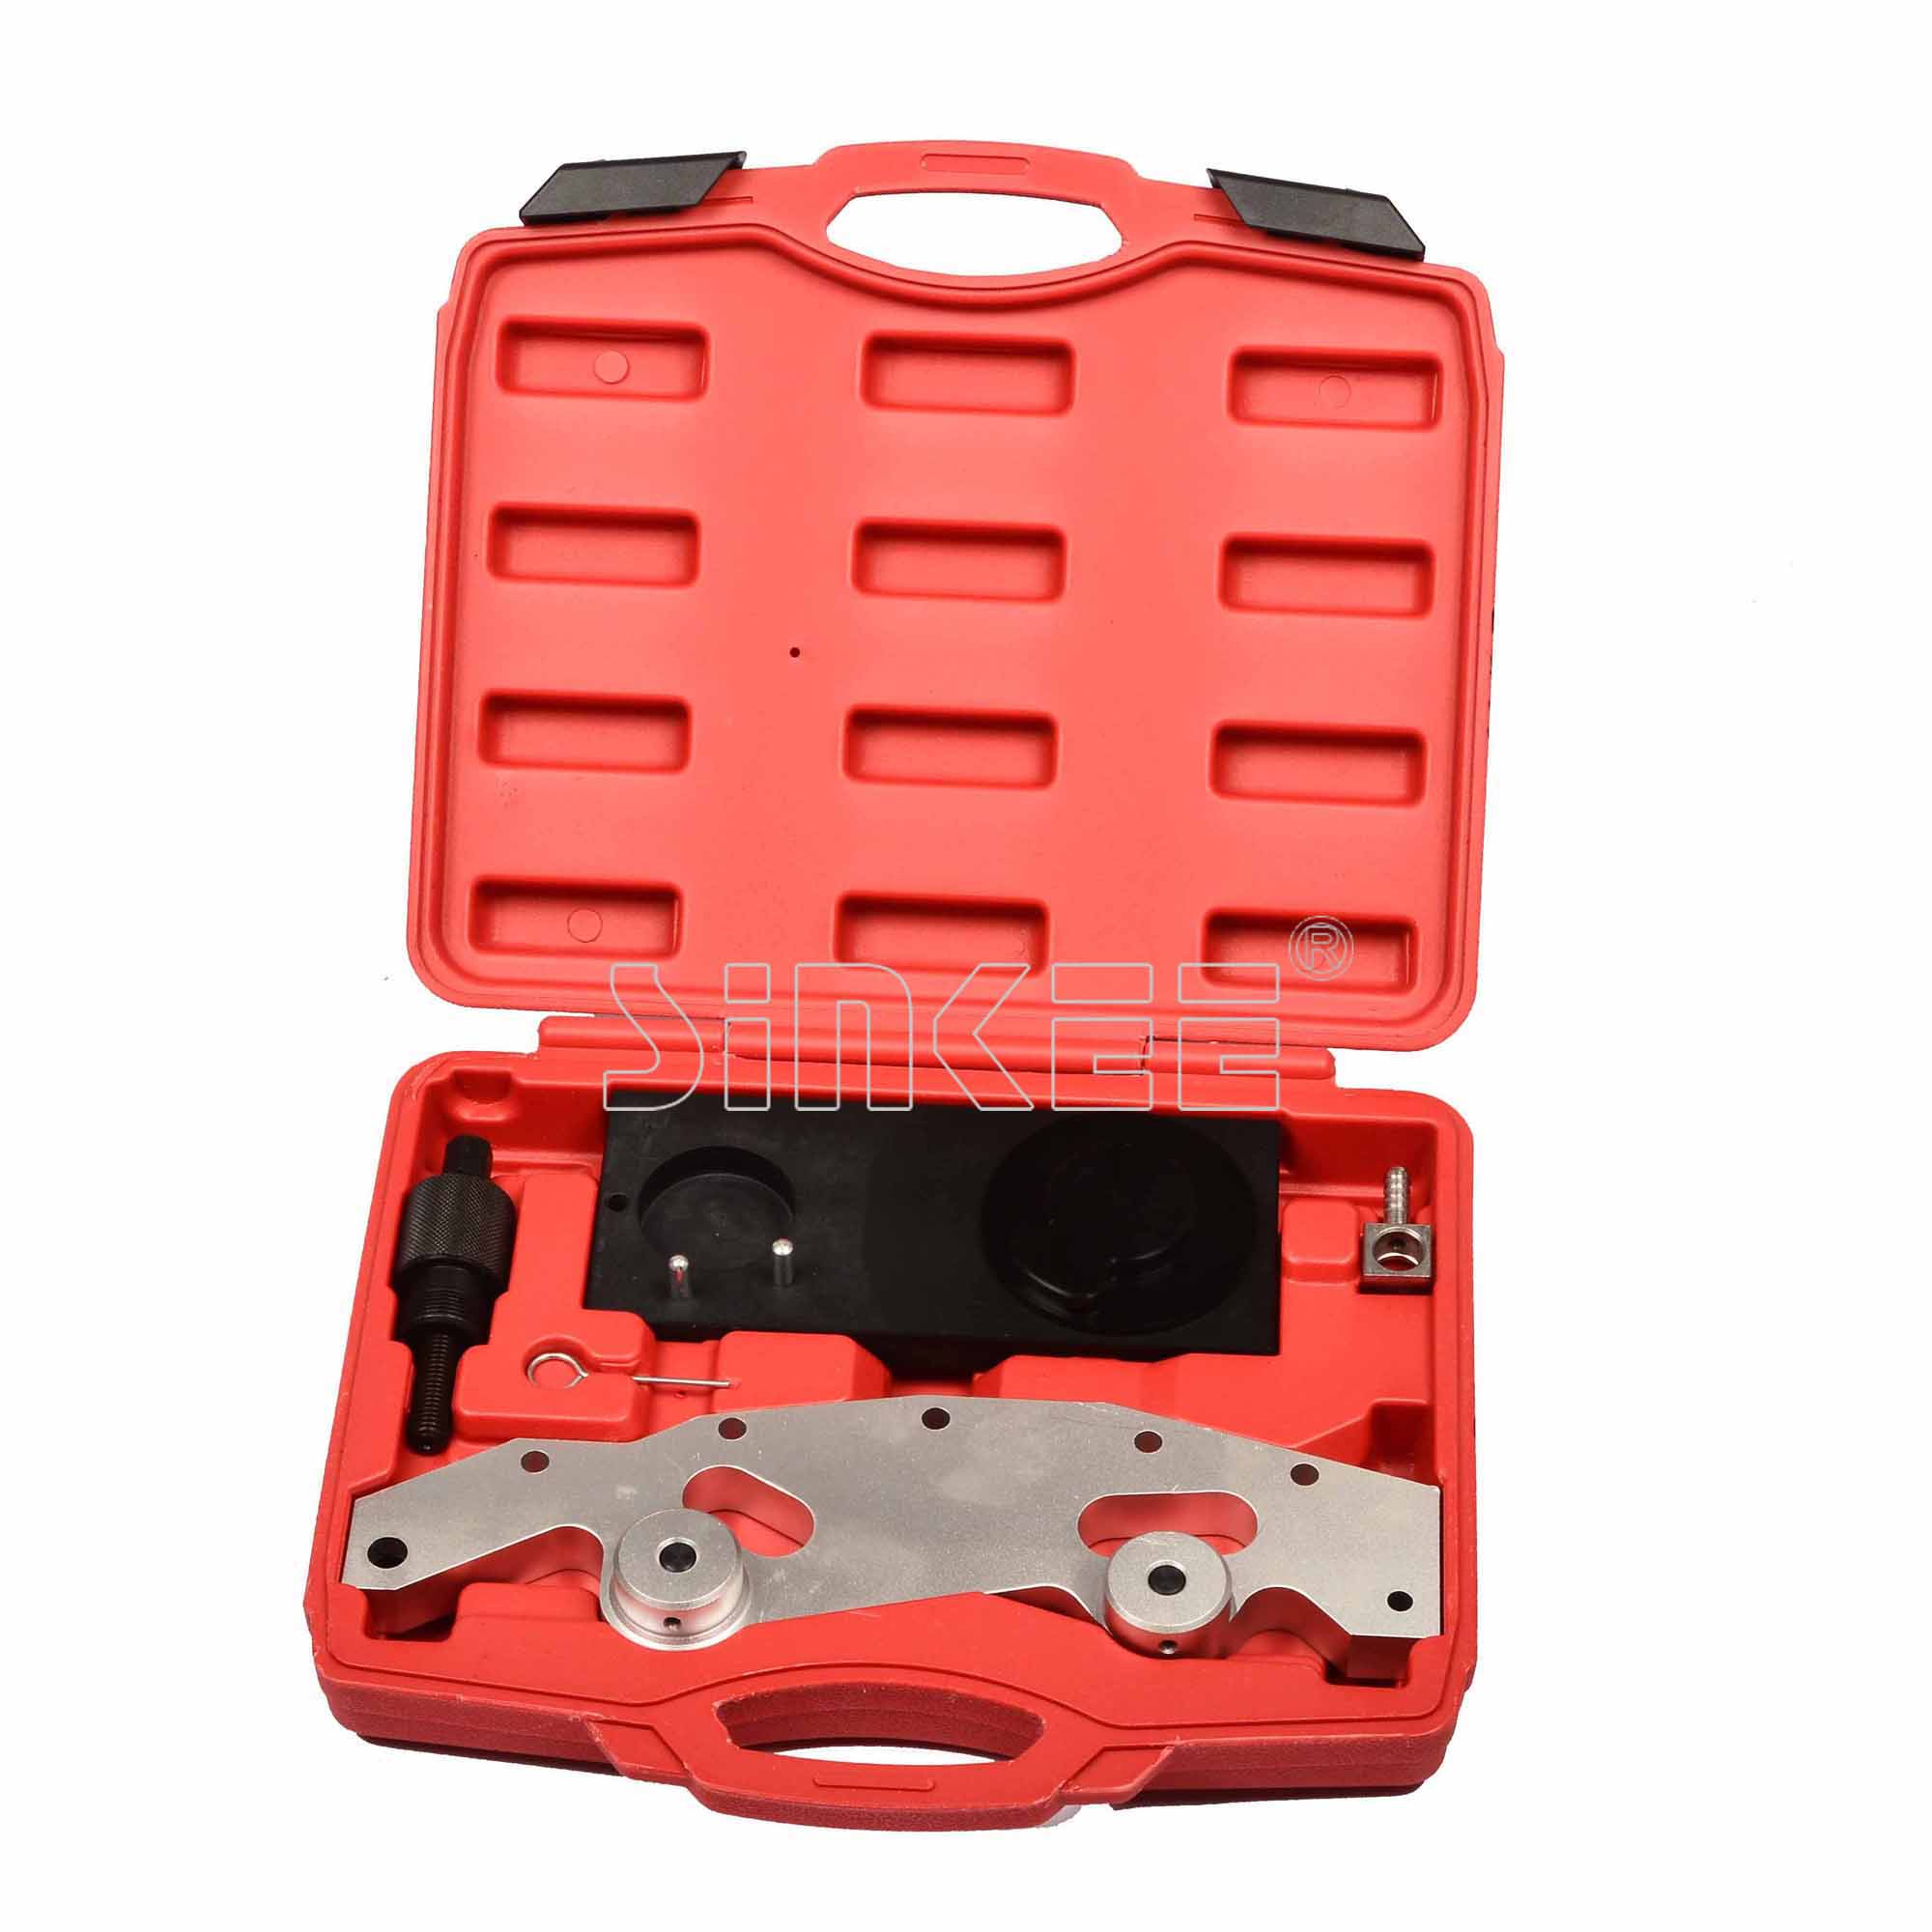 Double Vanos Assembly Timing Engine Tool 5pc Set For BMW M52TU/M54/M56